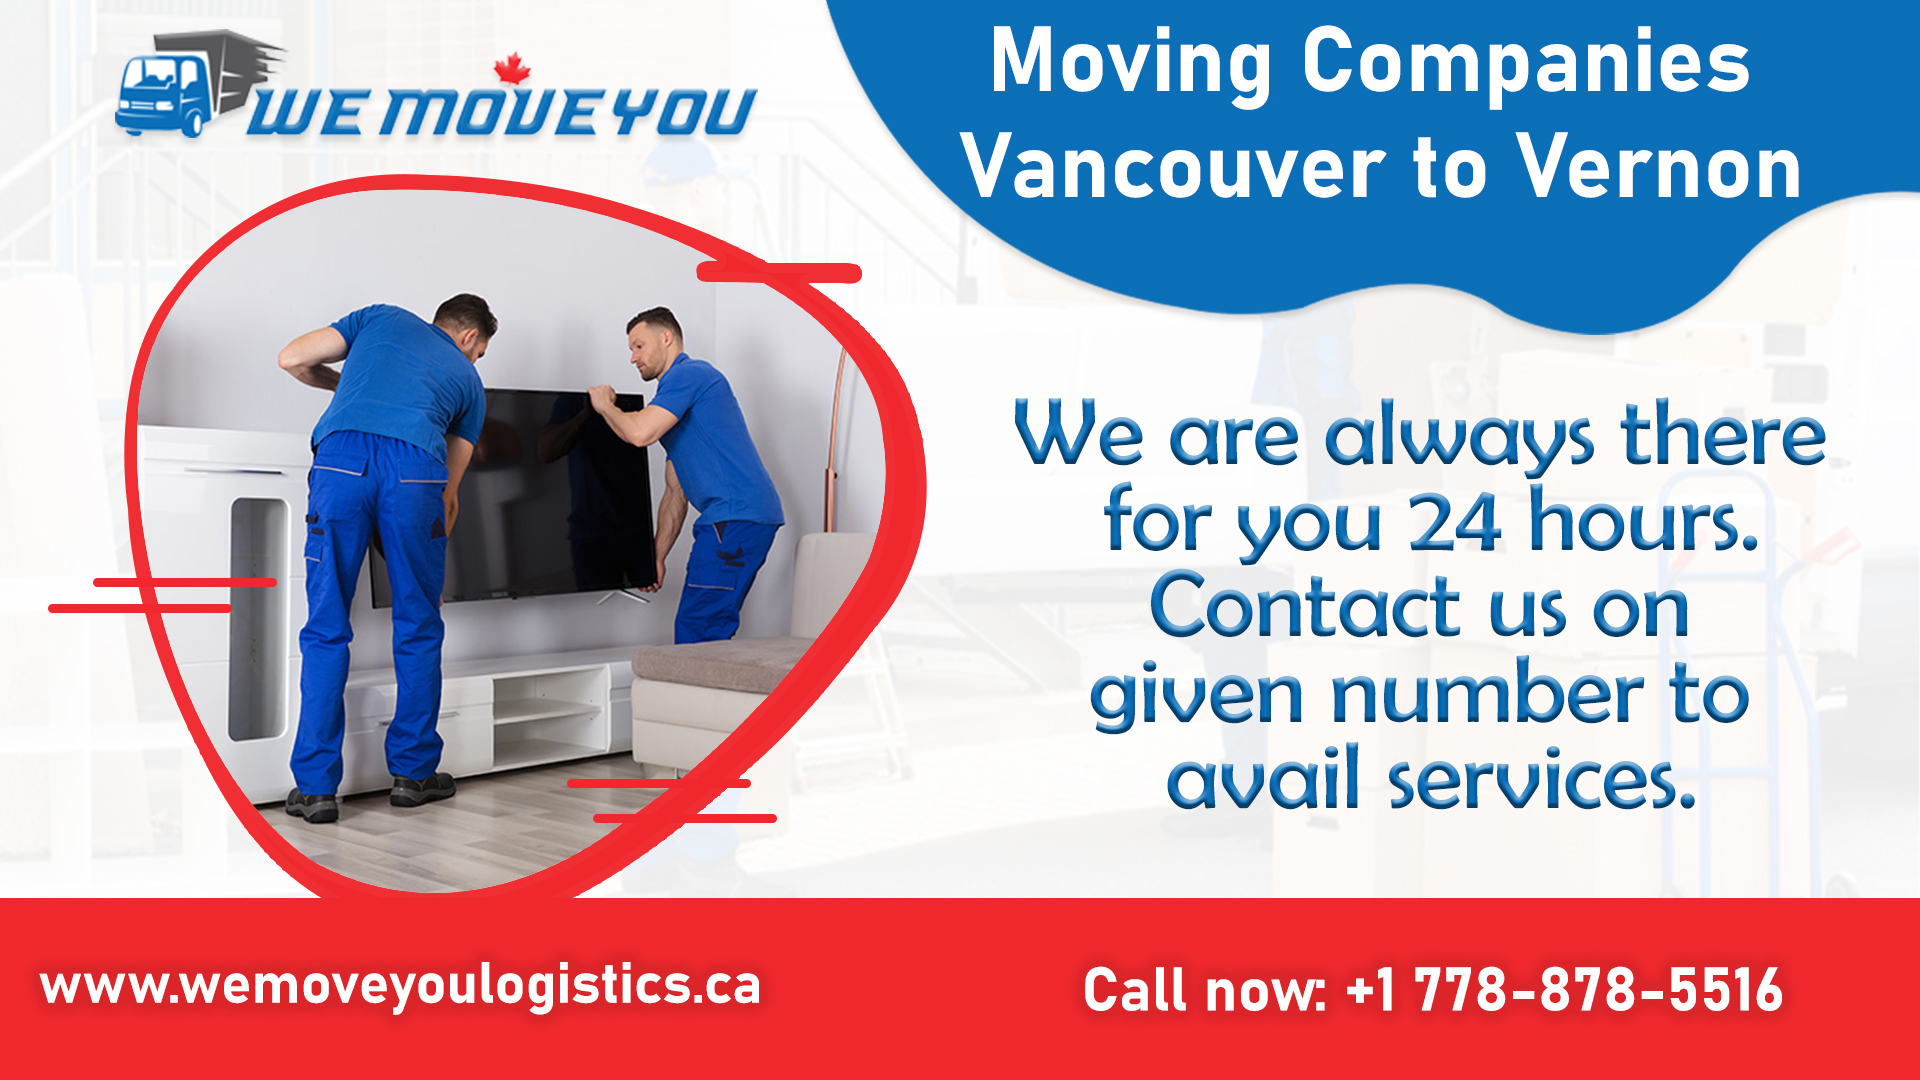 Moving Companies Vancouver to Vernon